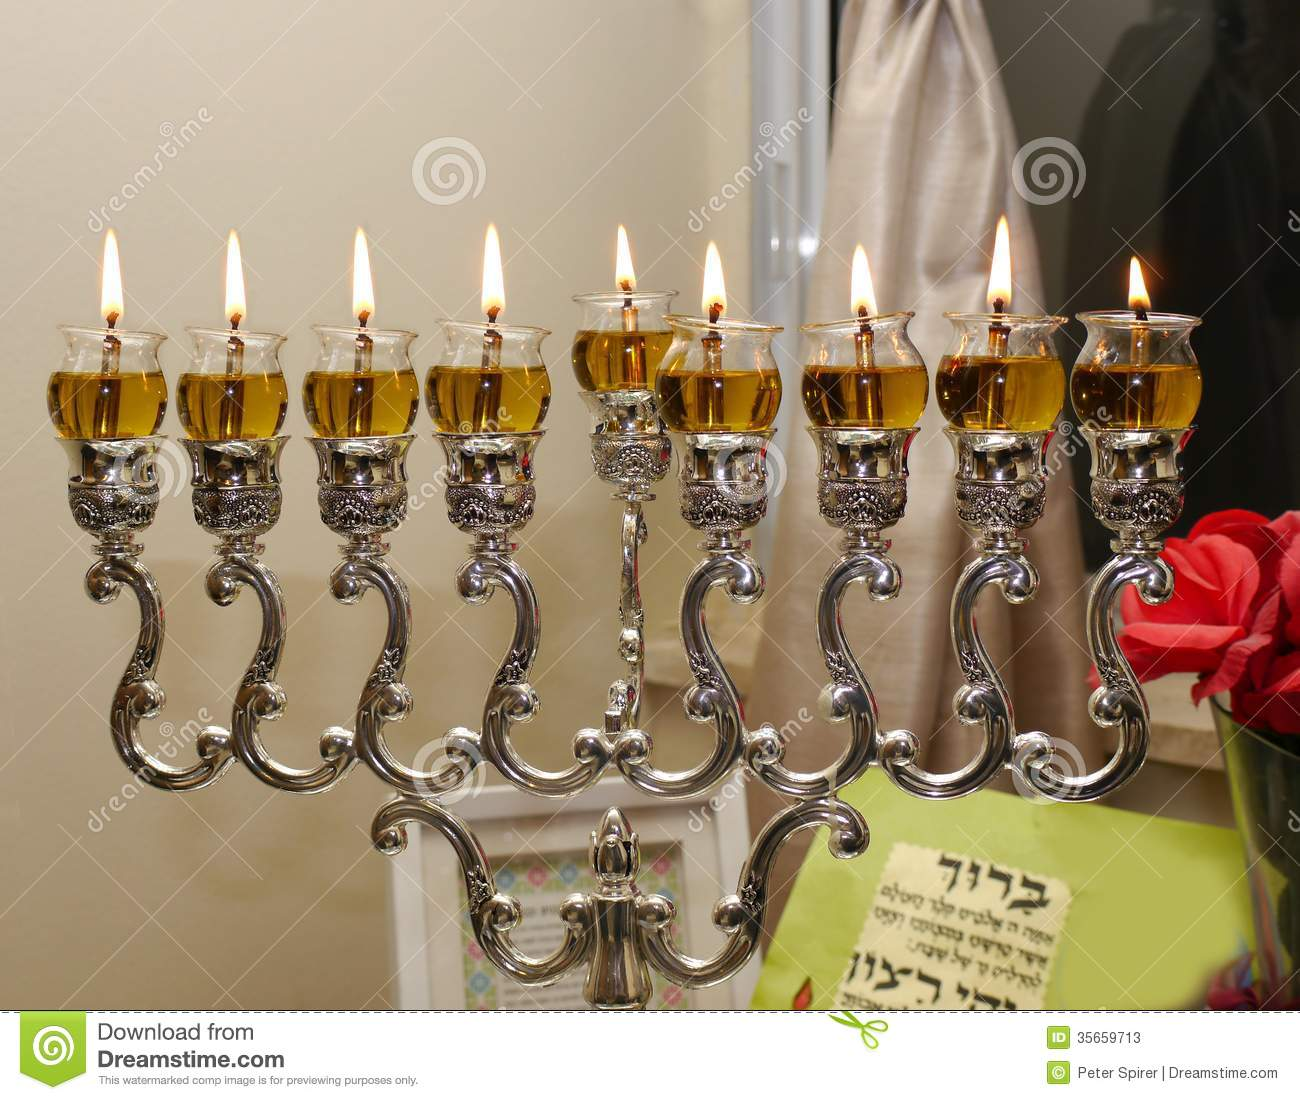 chanukah oil lamp stock photos image 35659713 candle flame clip art black and white candle flame clipart black and white